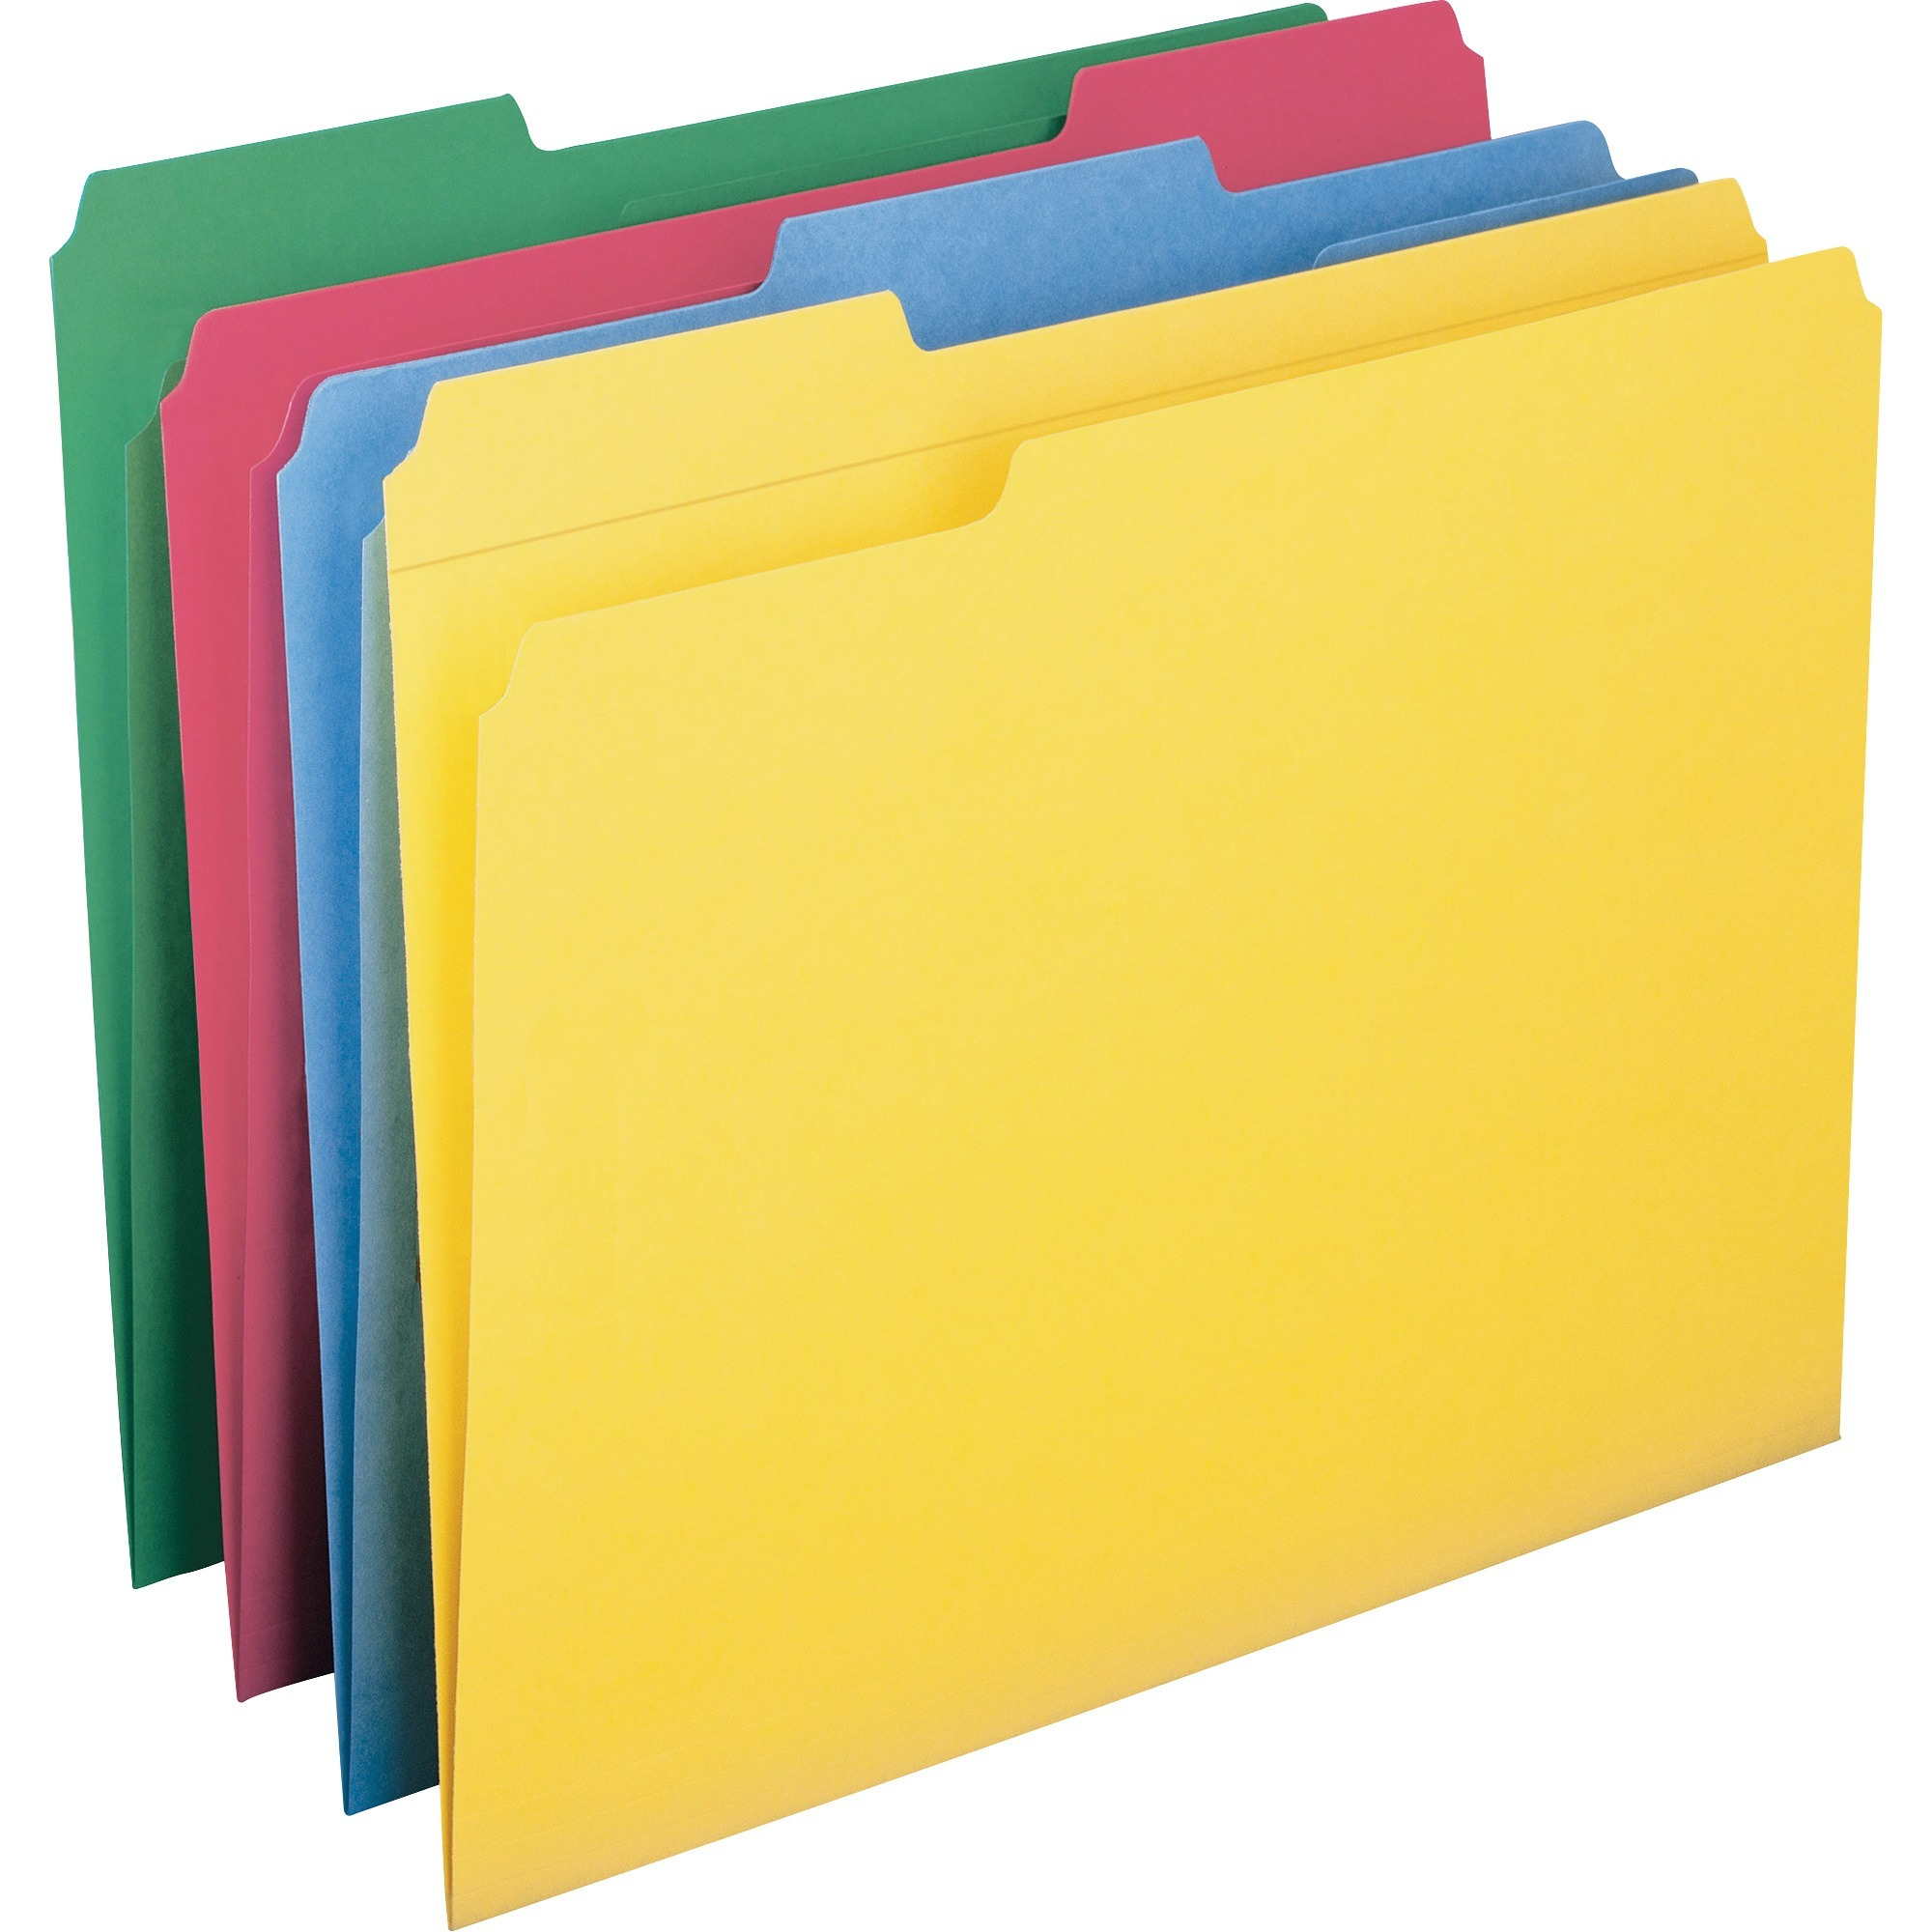 Smead, SMD11641, 1/3 Cut Colored Packaged File Folders, 12 / Pack, Blue,Green,Red,Yellow